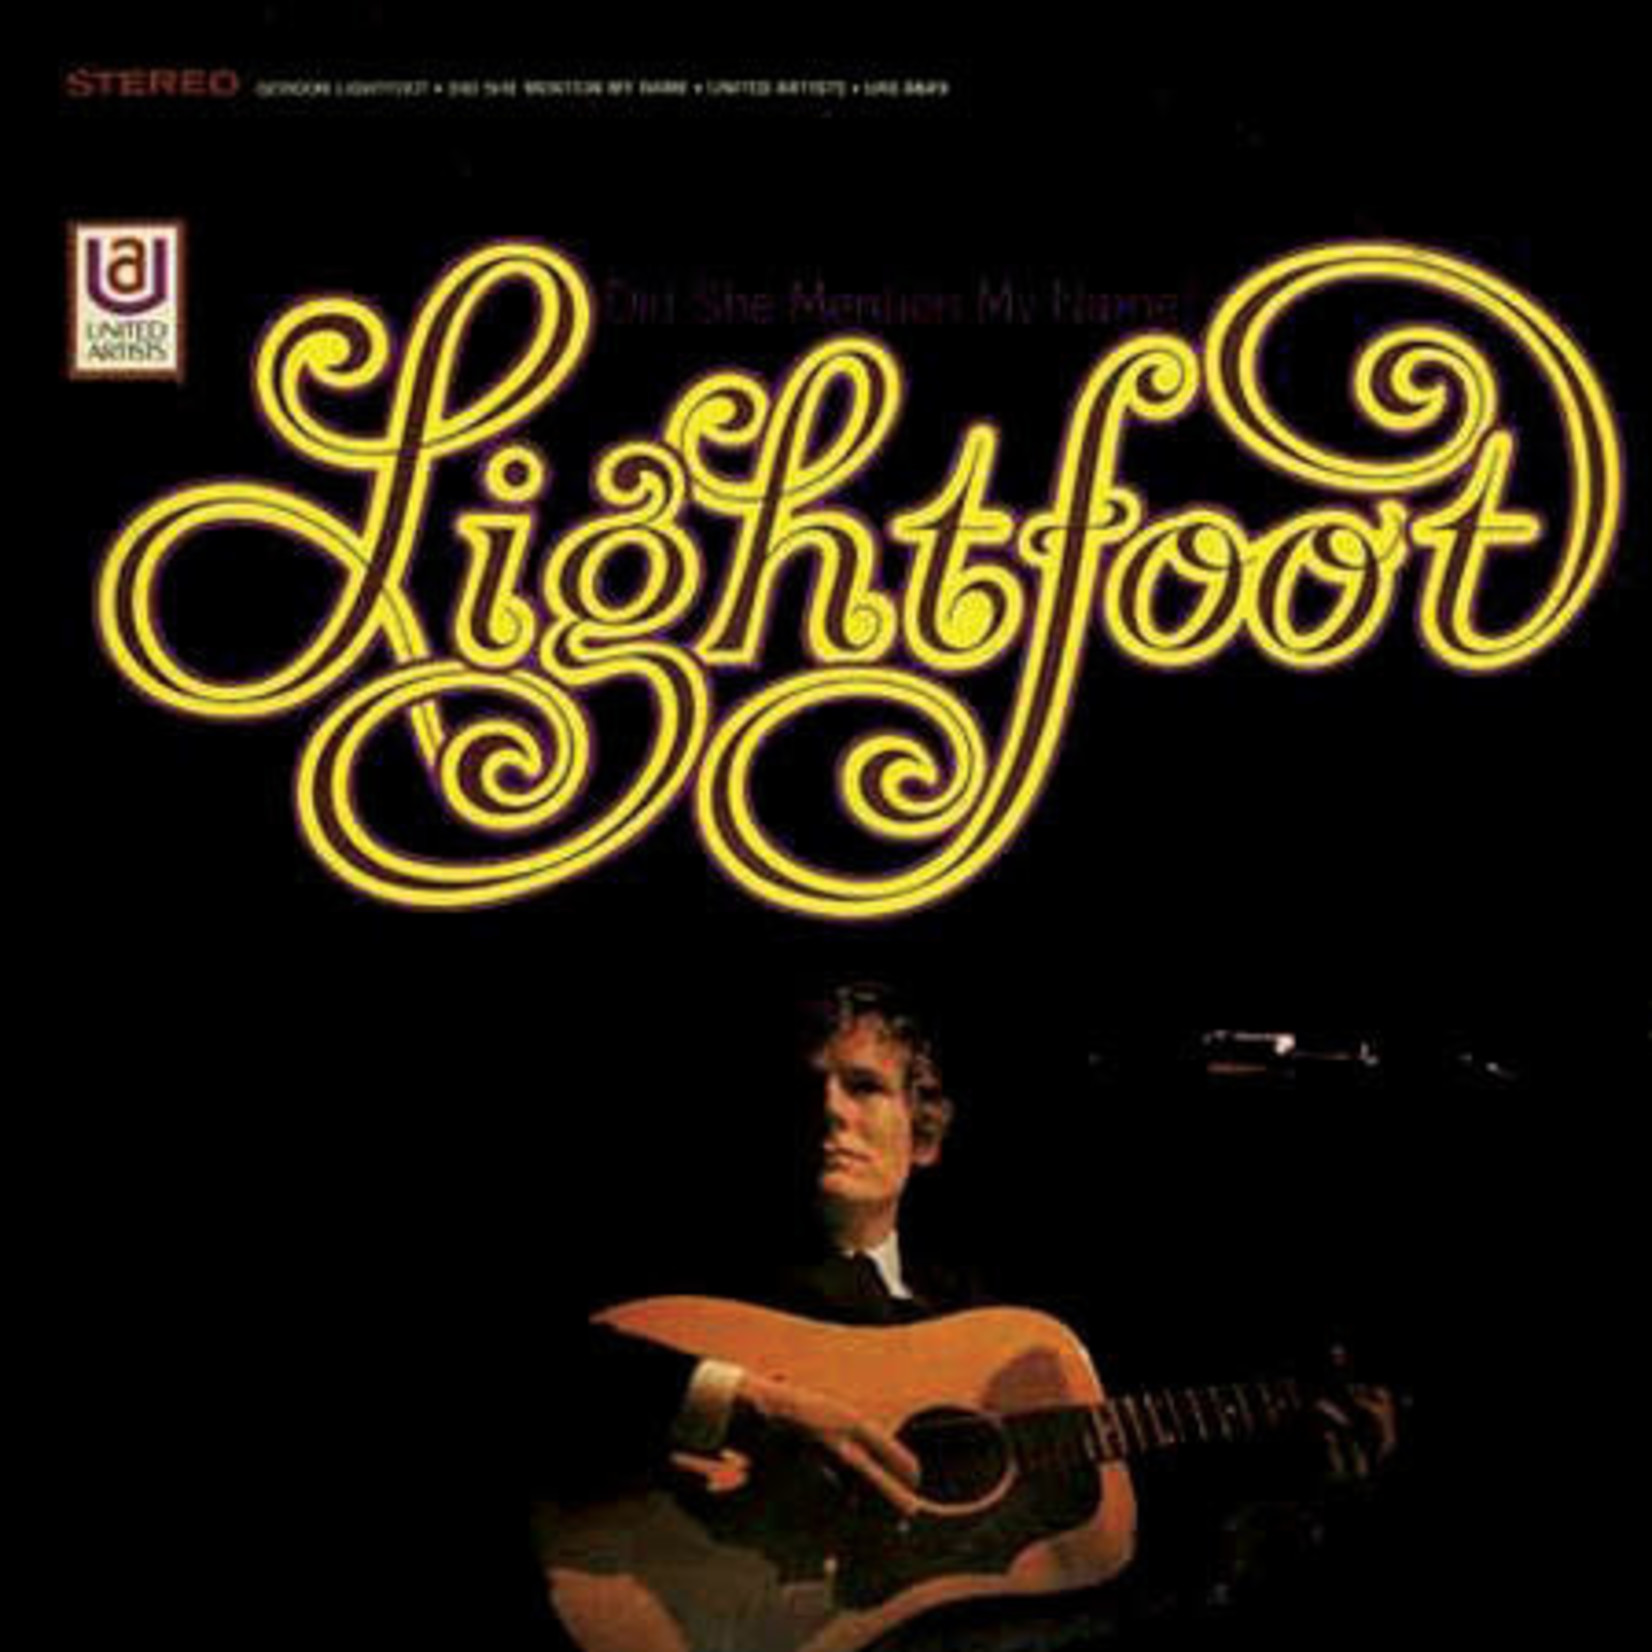 [Vintage] Lightfoot, Gordon: Did She Mention My Name?